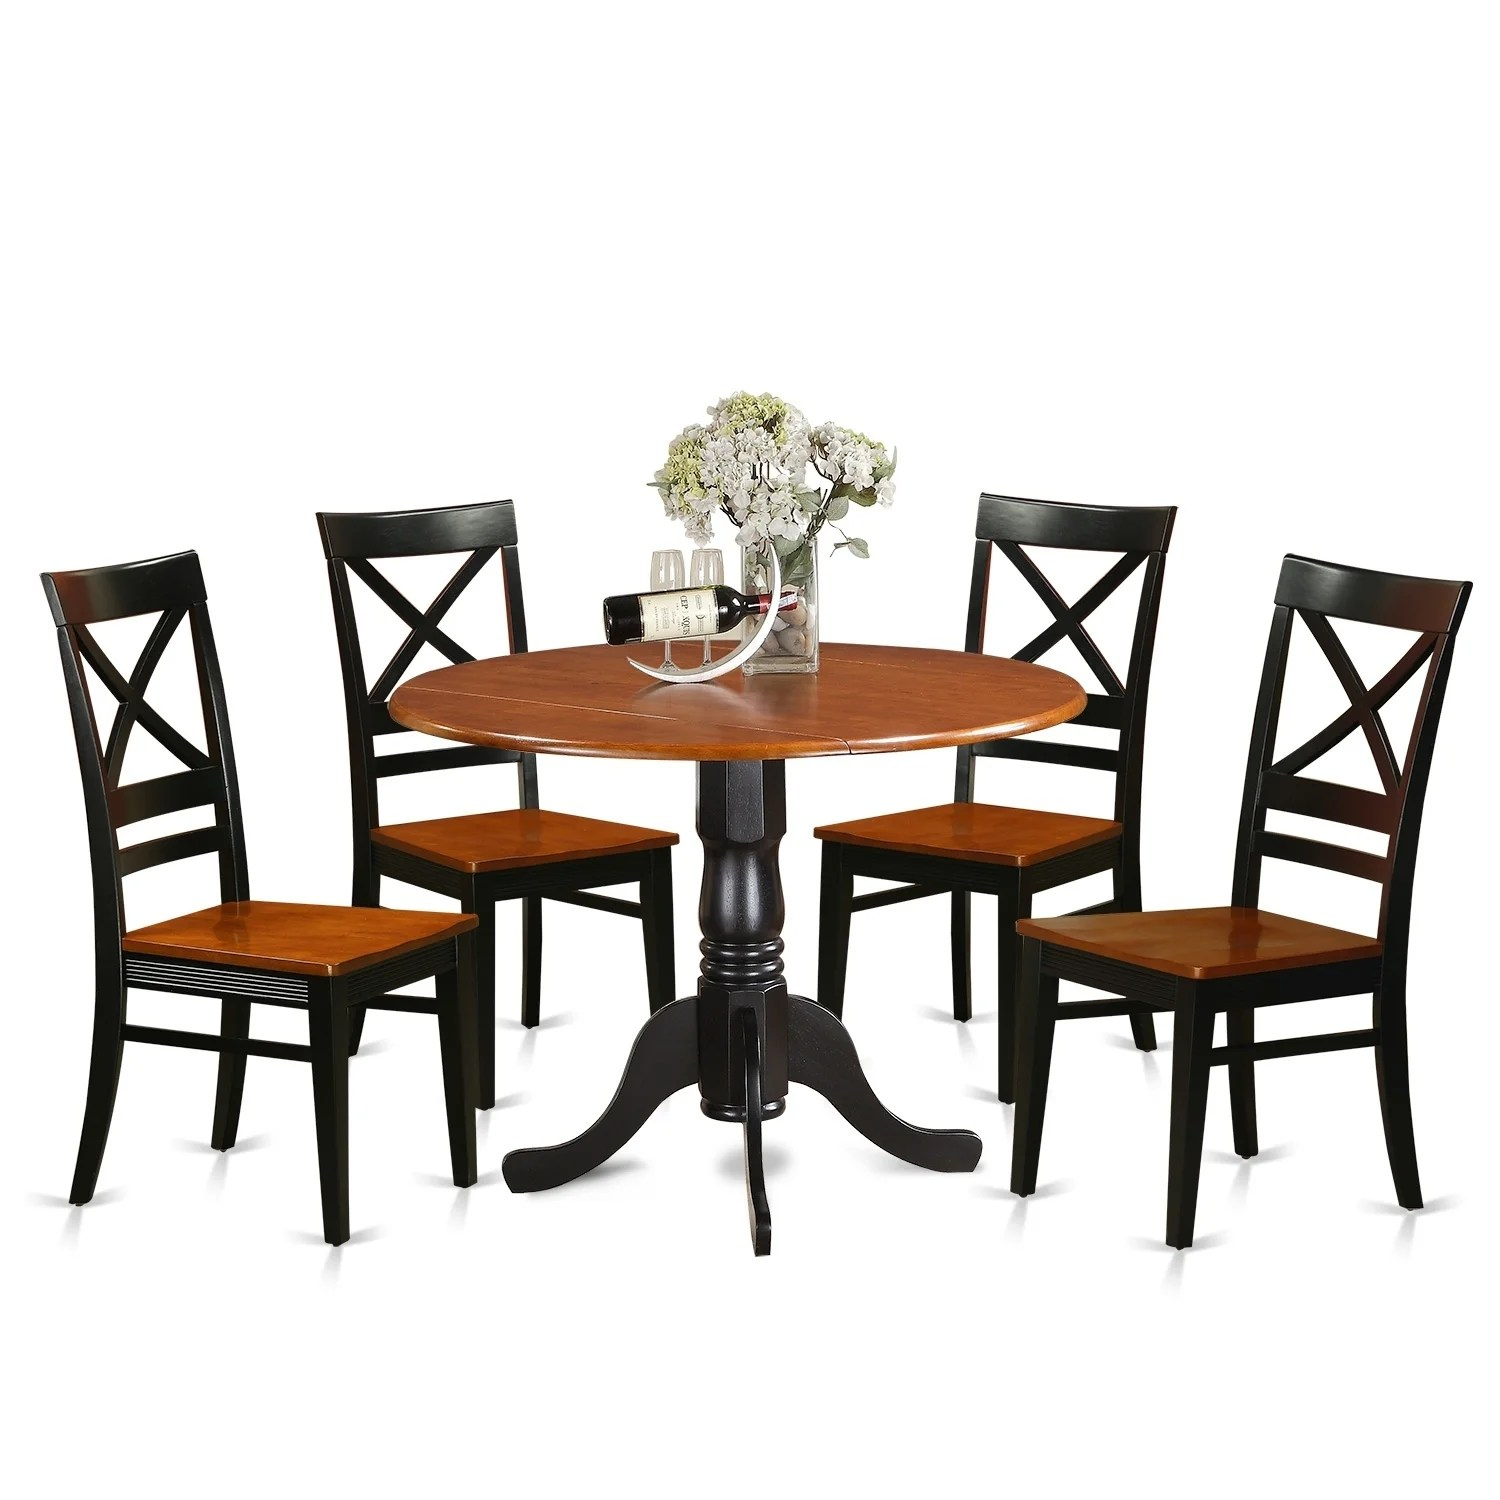 Set Of 4 Kitchen Chairs Dining Table Set For 4